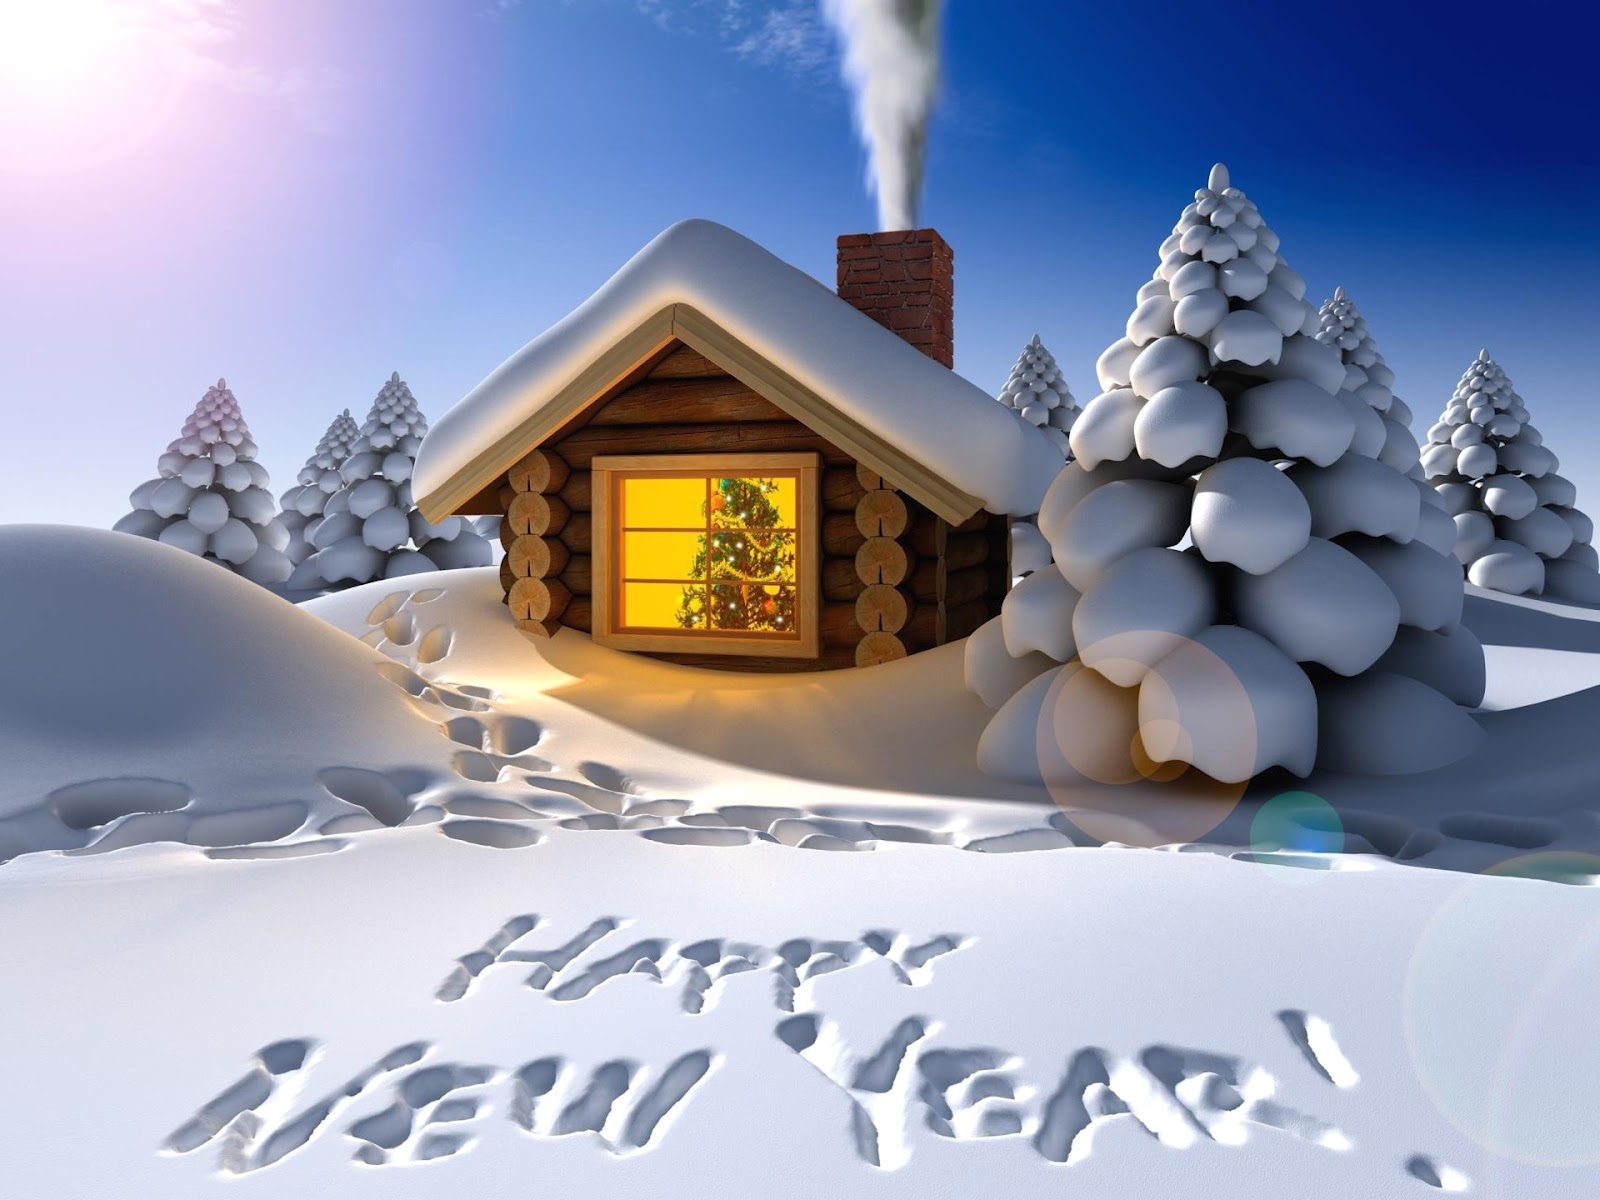 http://3.bp.blogspot.com/-Vjc7IpFDviY/T38wxeiiBKI/AAAAAAAAJ2w/svnnsuix5c4/s1600/2012-new-year-wallpapers-hd.jpg